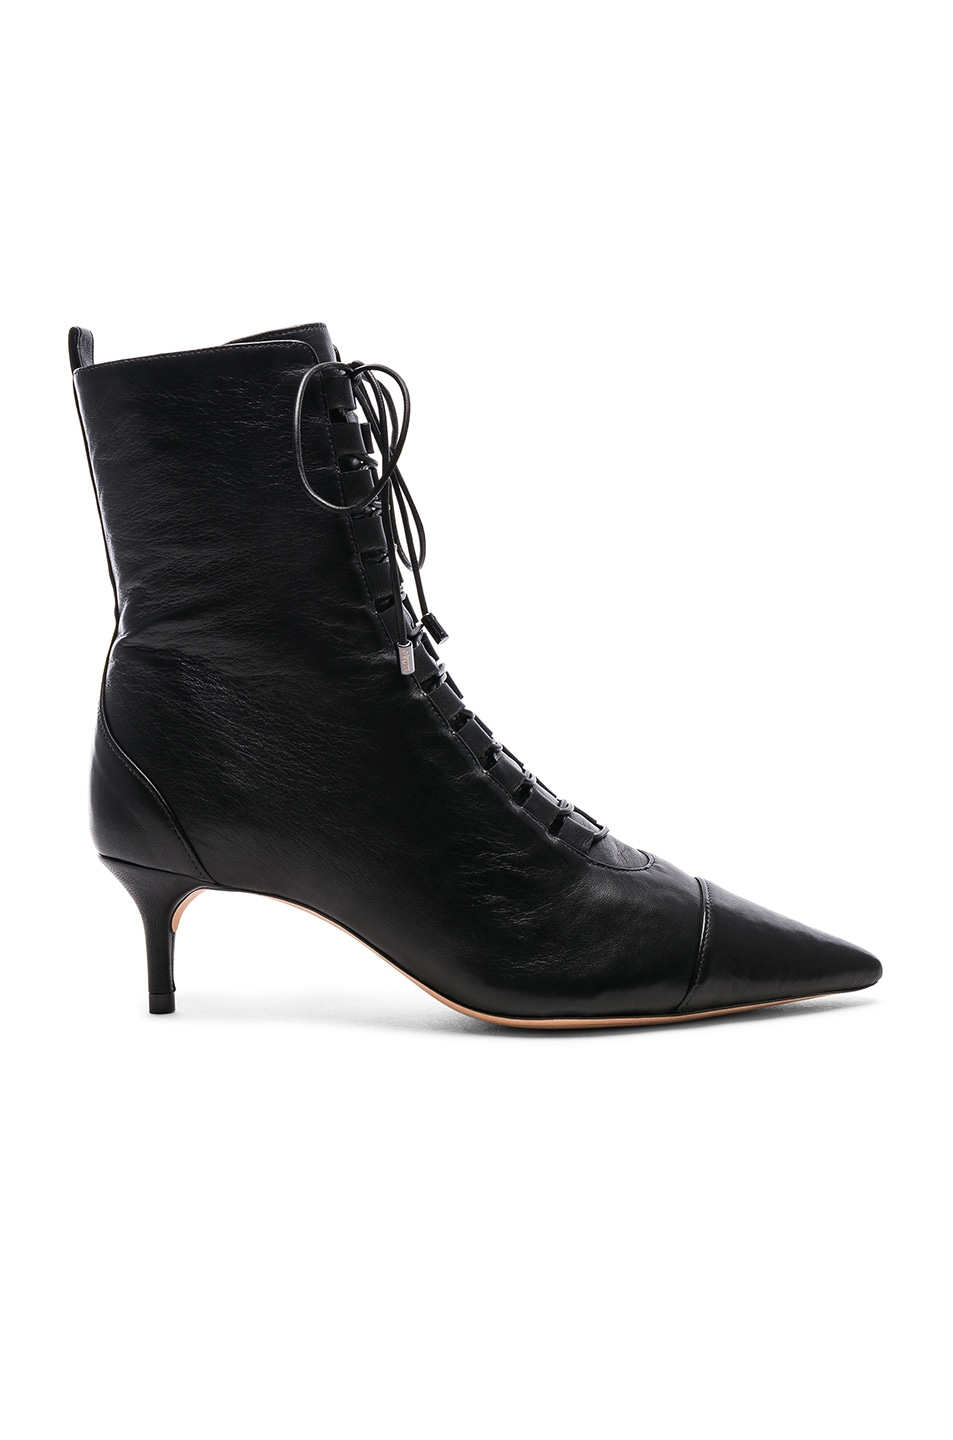 Image 1 of Alexandre Birman Leather Millen Lace Up Ankle Boots in Black